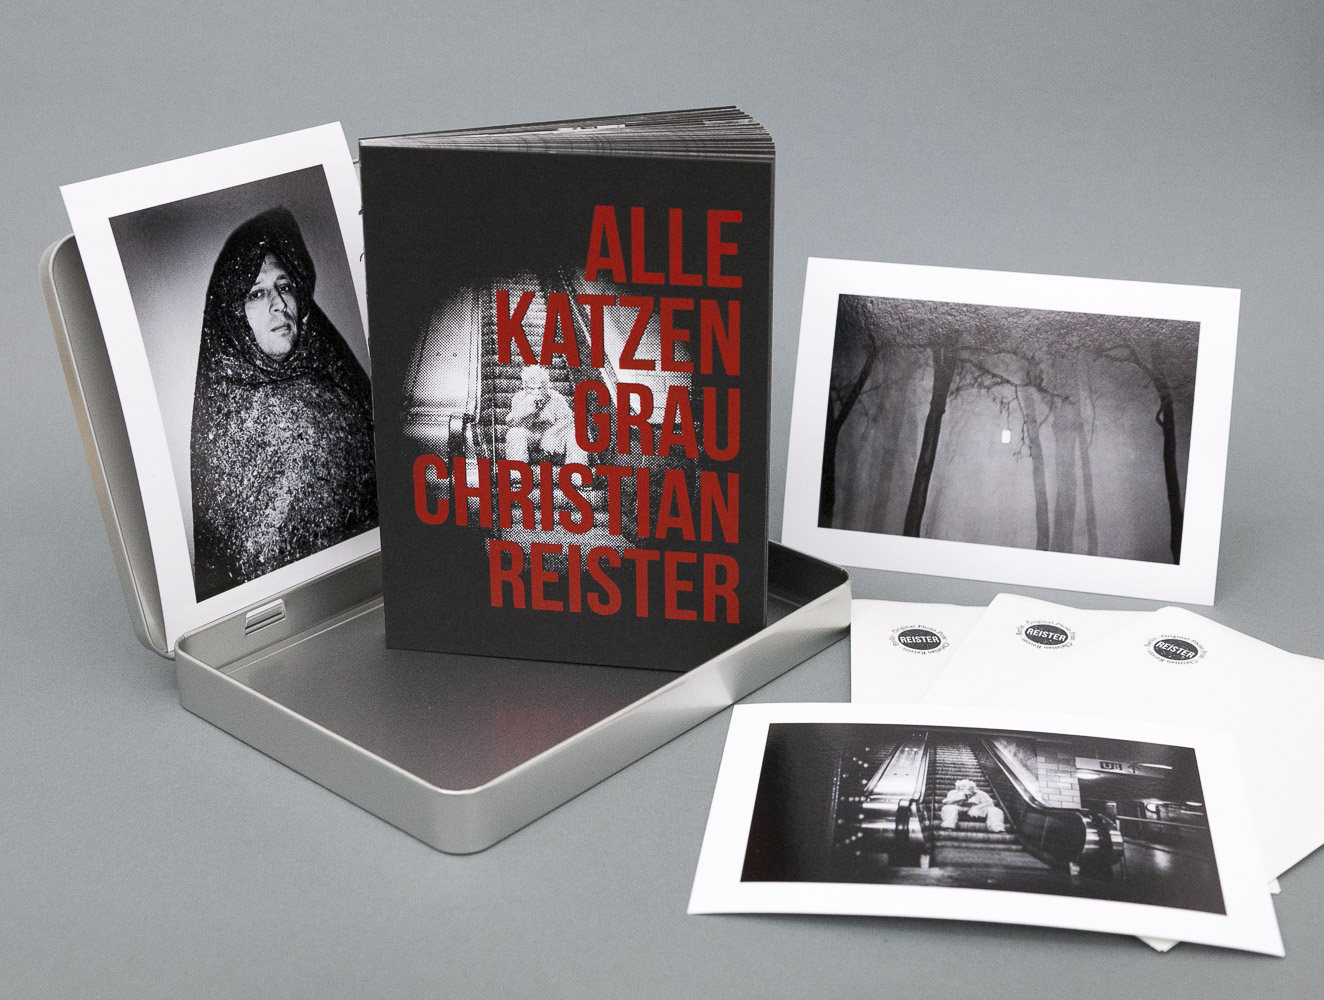 Alle Katzen Grau - Limited Edition Collector's Box in Metal Box + 3 Prints